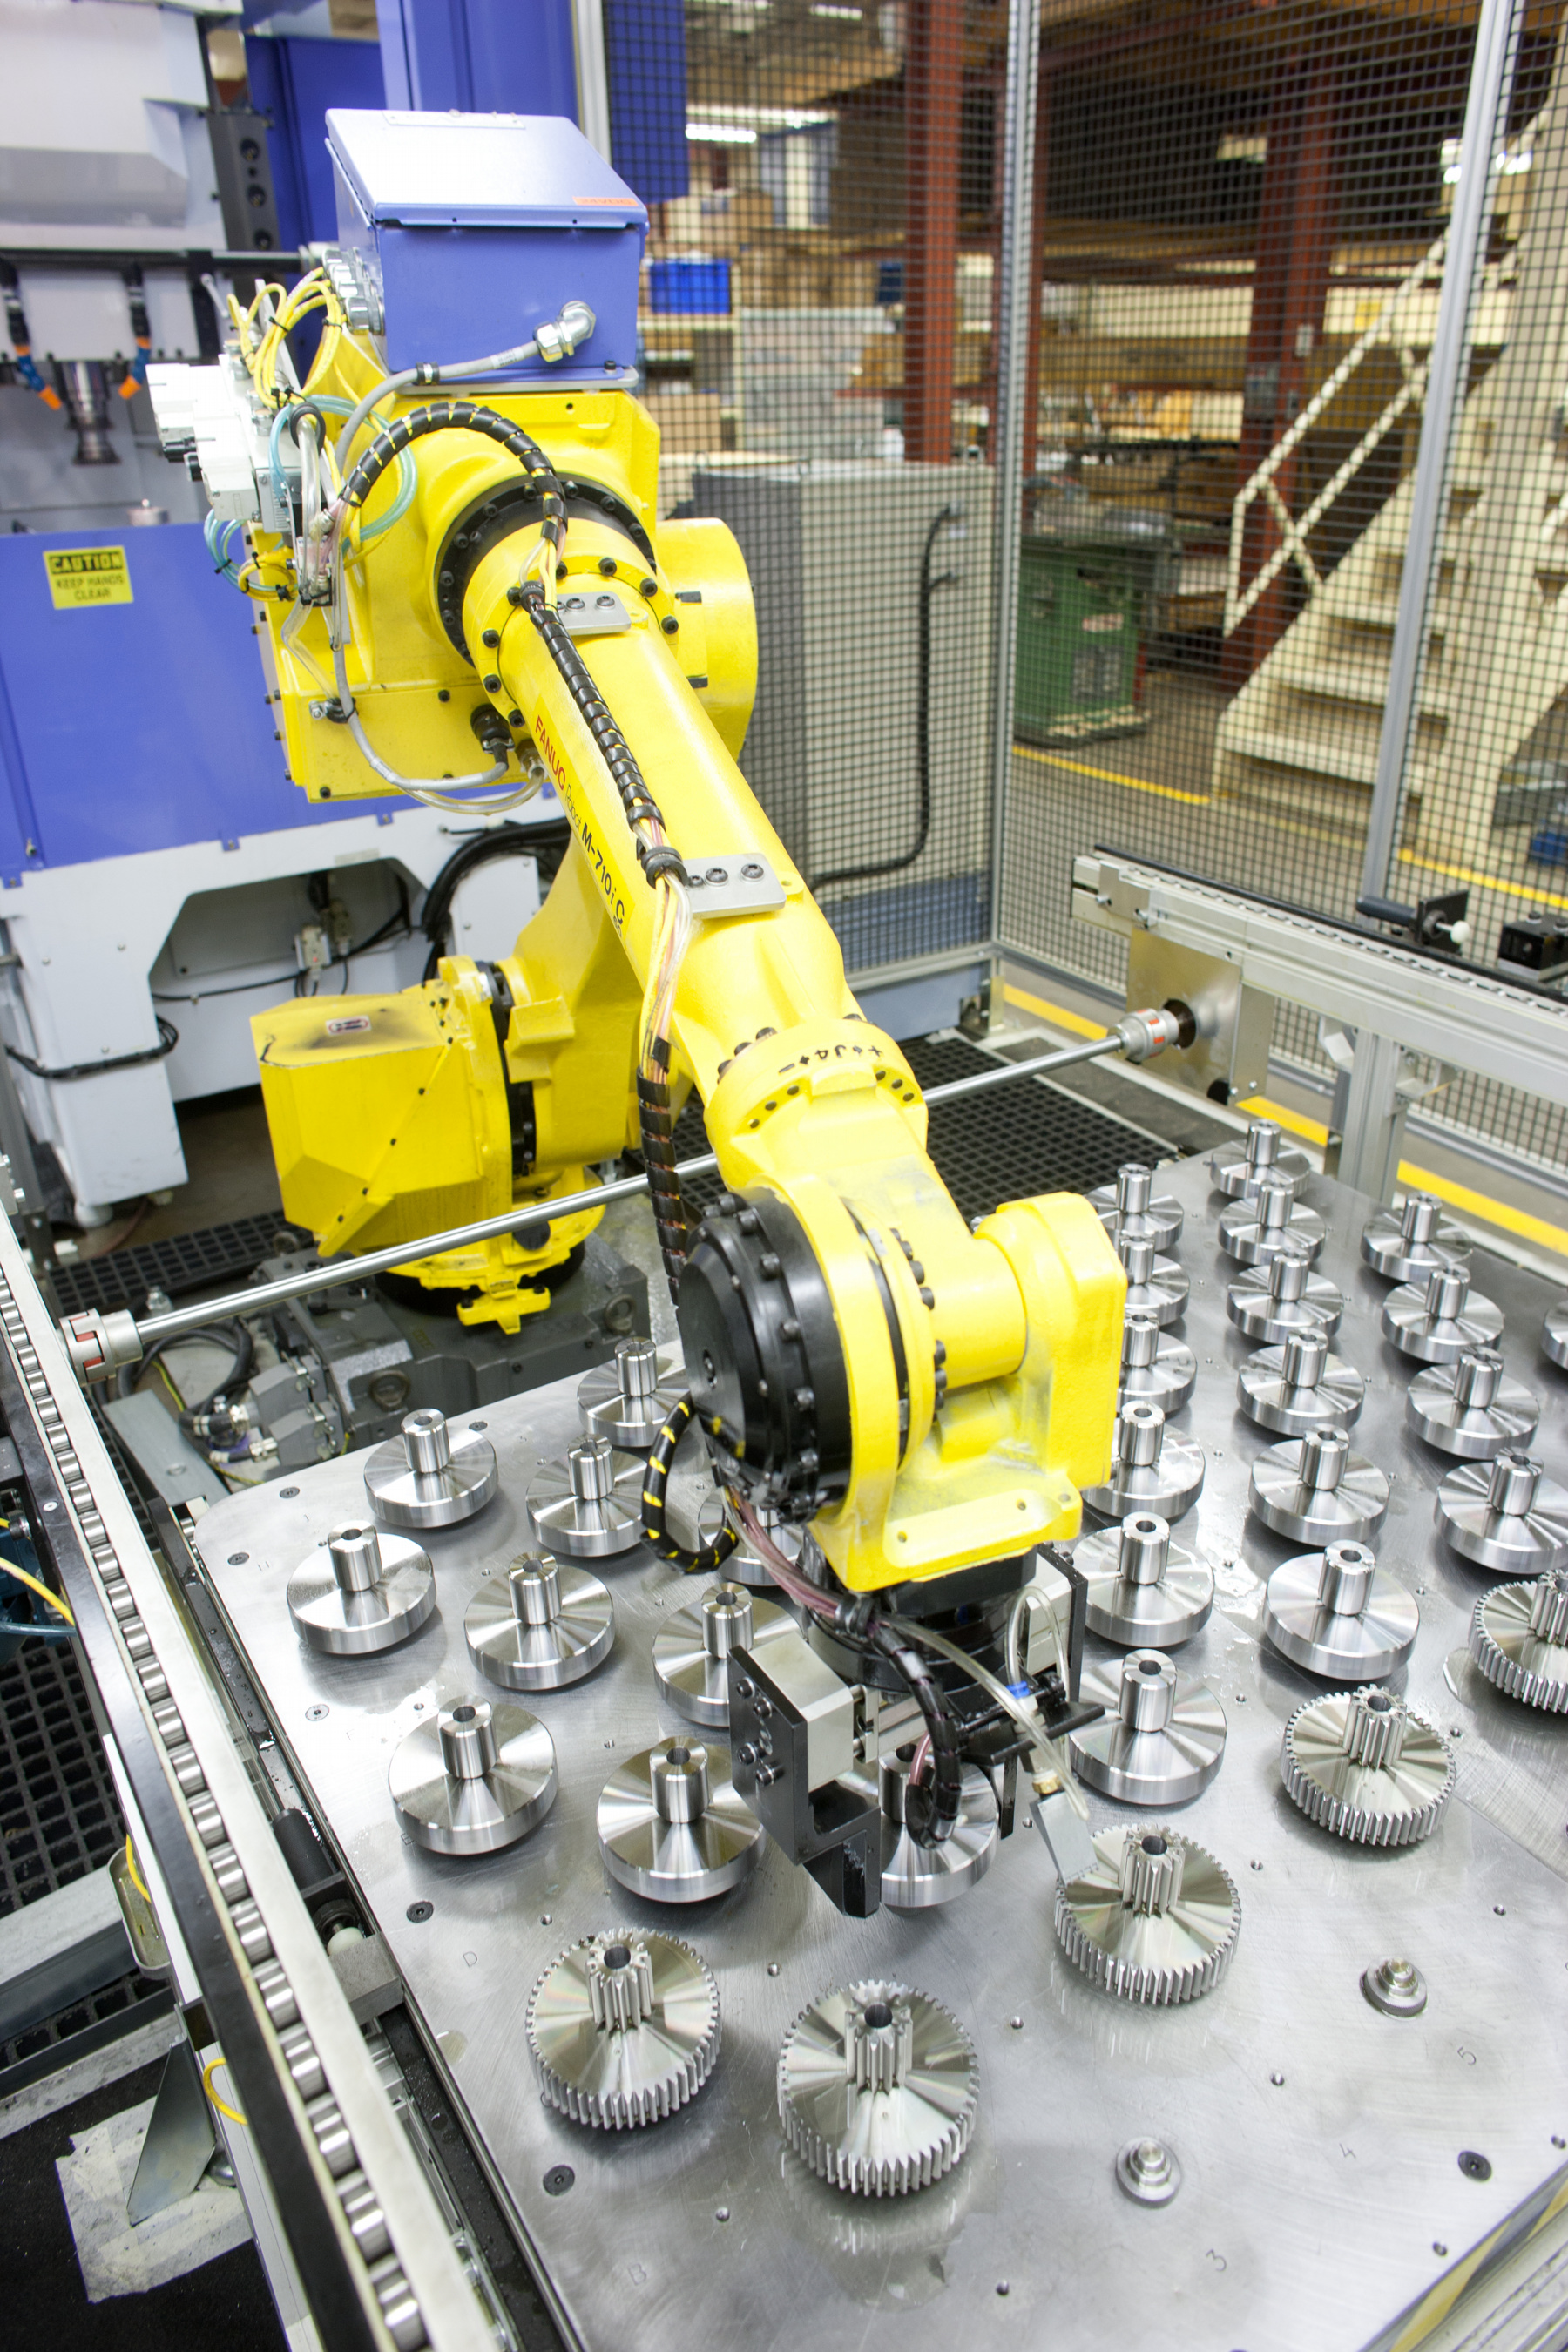 State-of-the-art manufacturing equipment